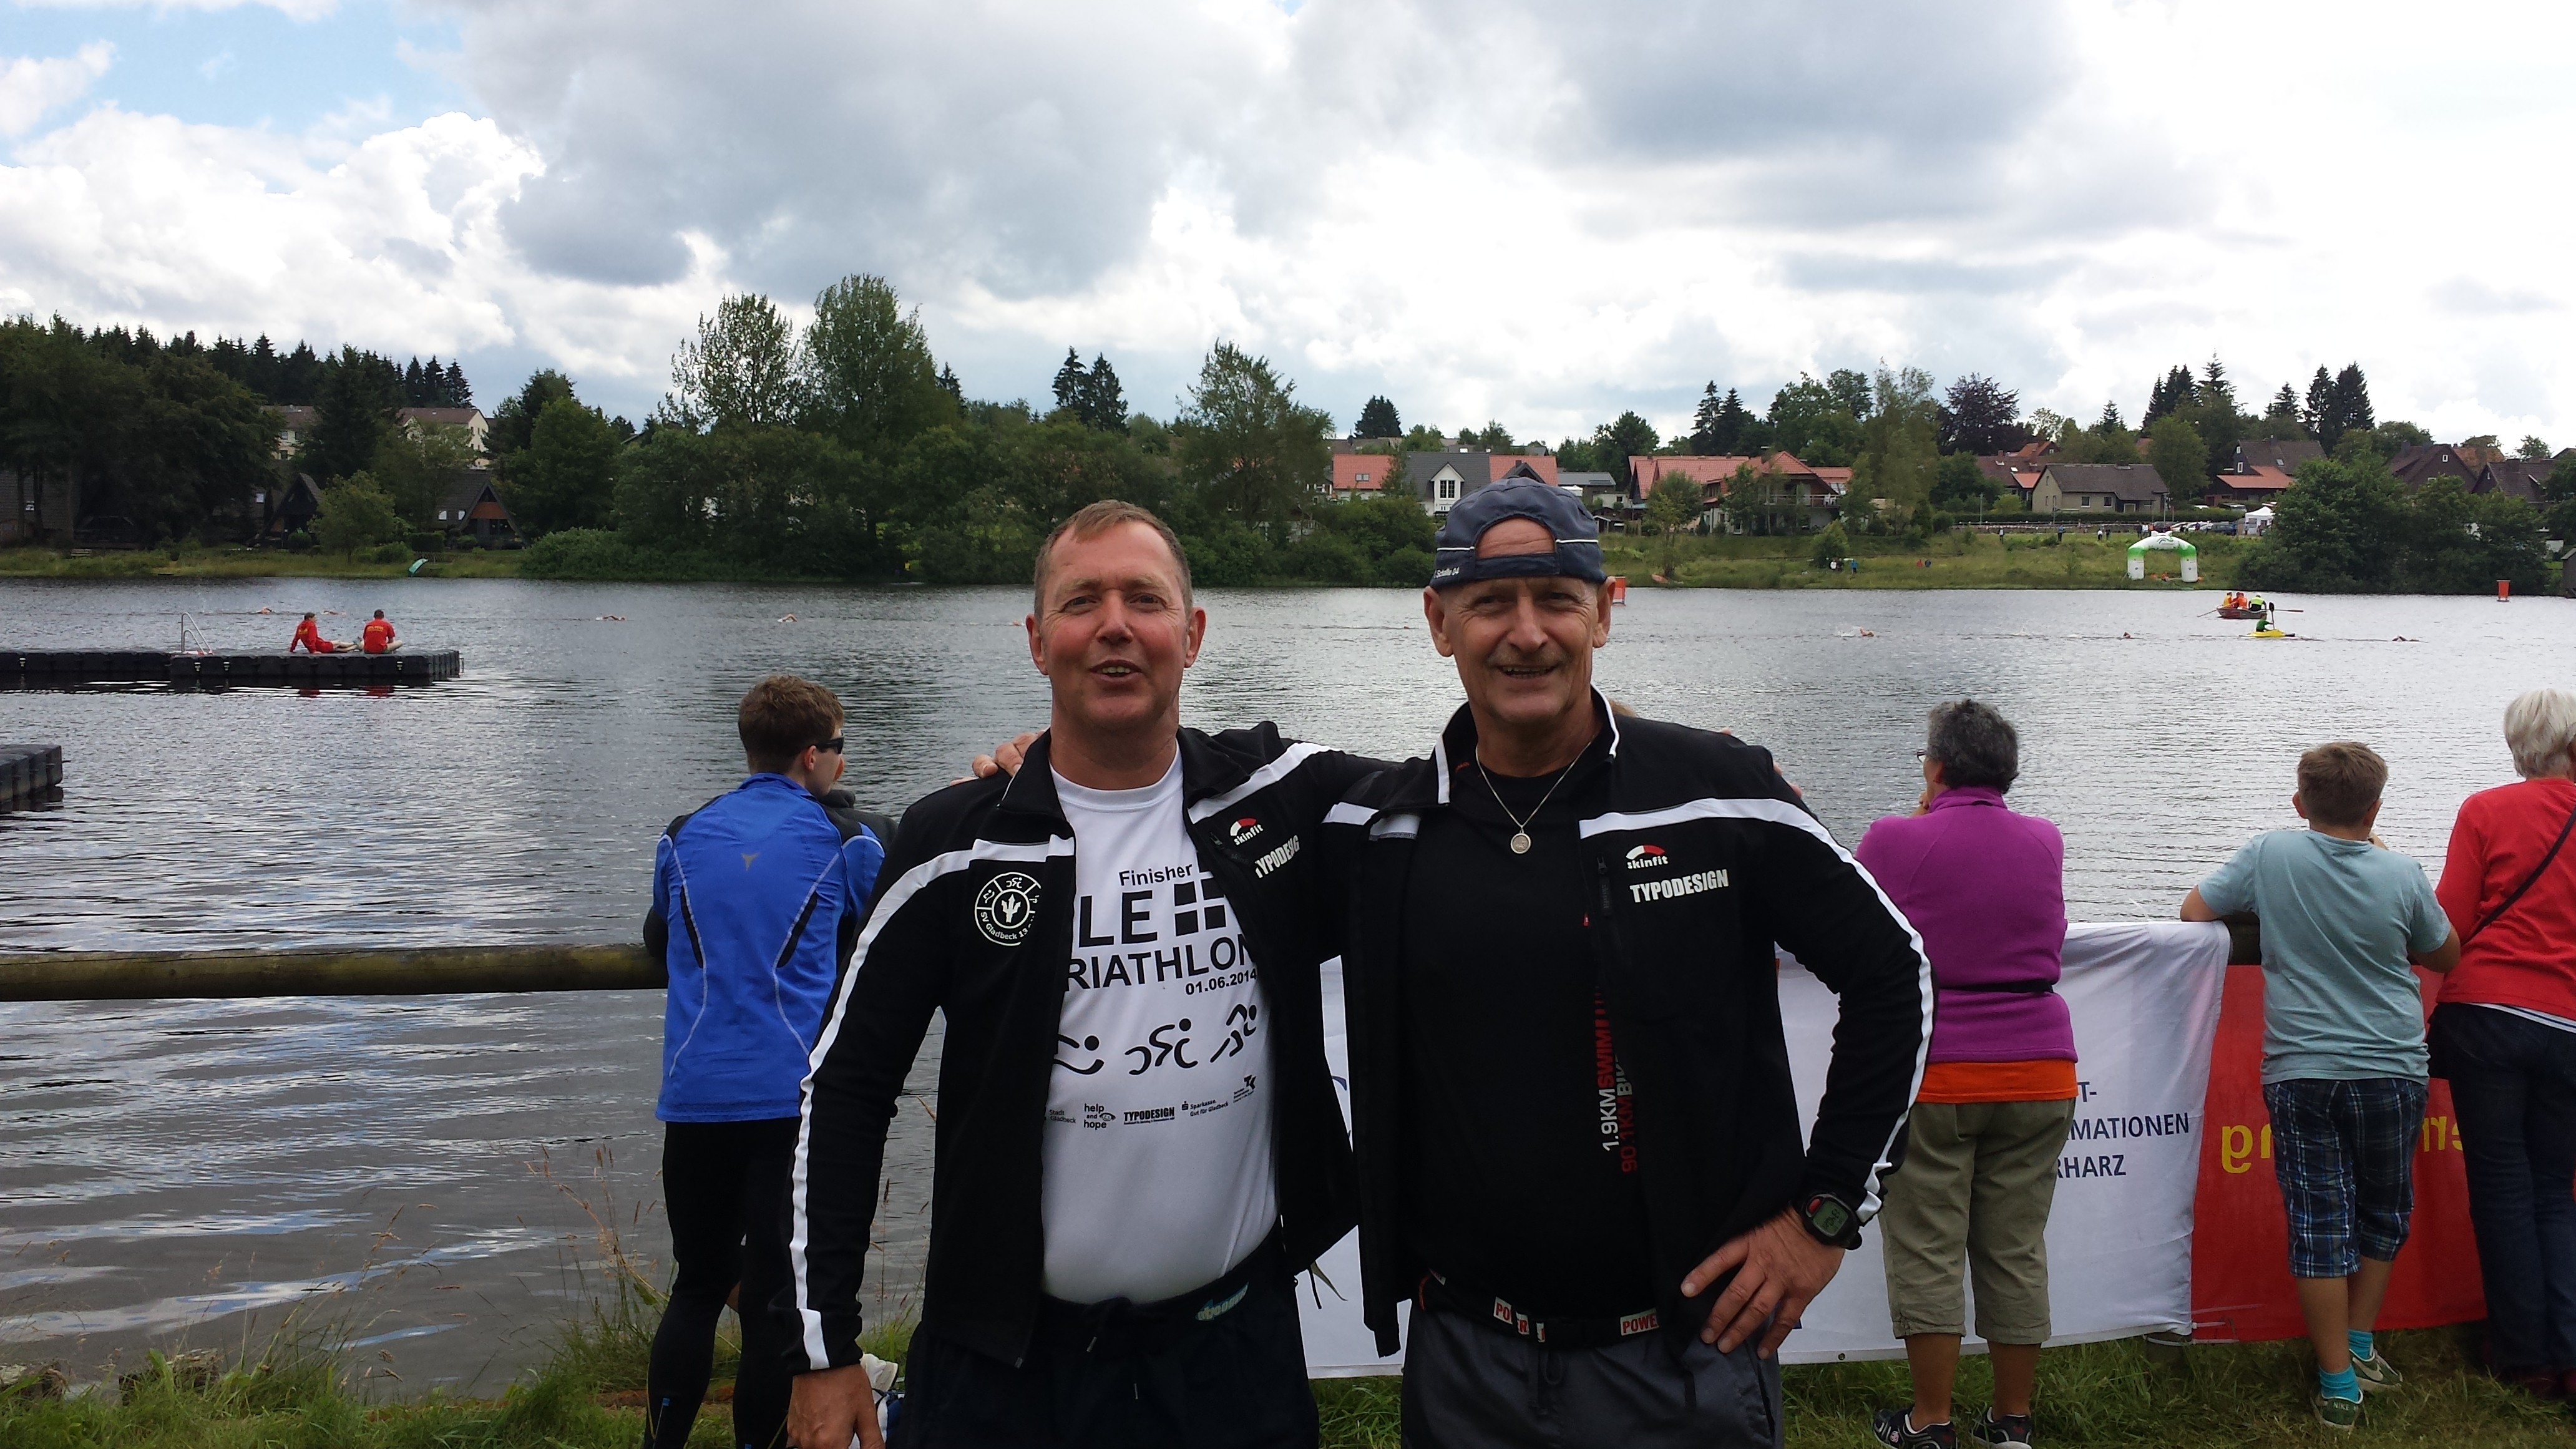 Cross-Triathlon - links Siegfried Priebel, rechts Jürgen Schramm